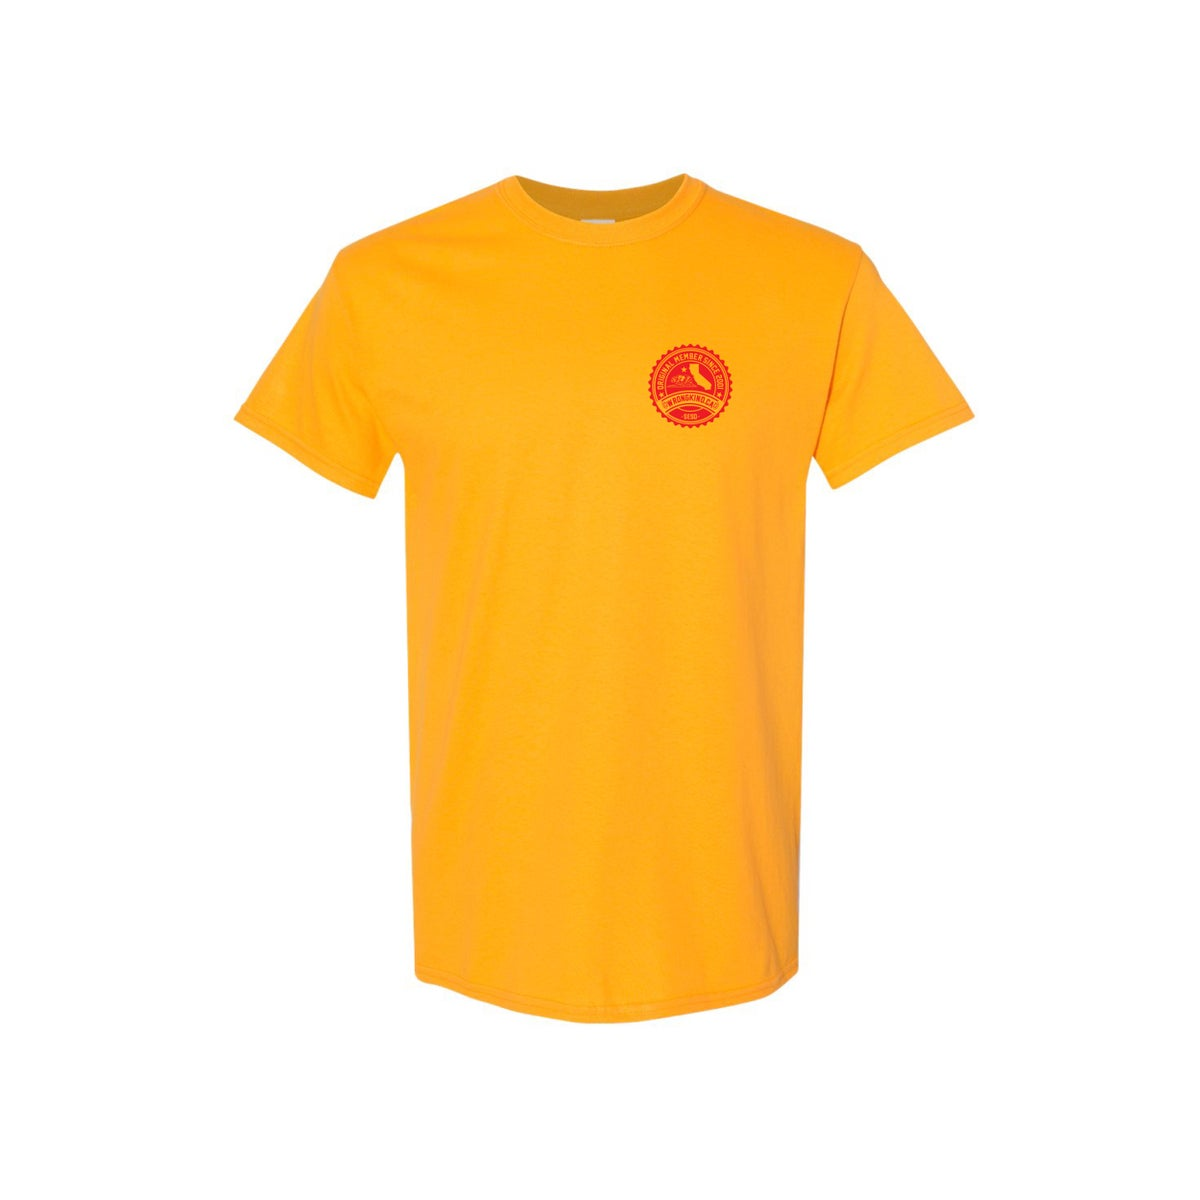 Image of Wrongkind Stamp T-Shirt (Gold w/ Red)